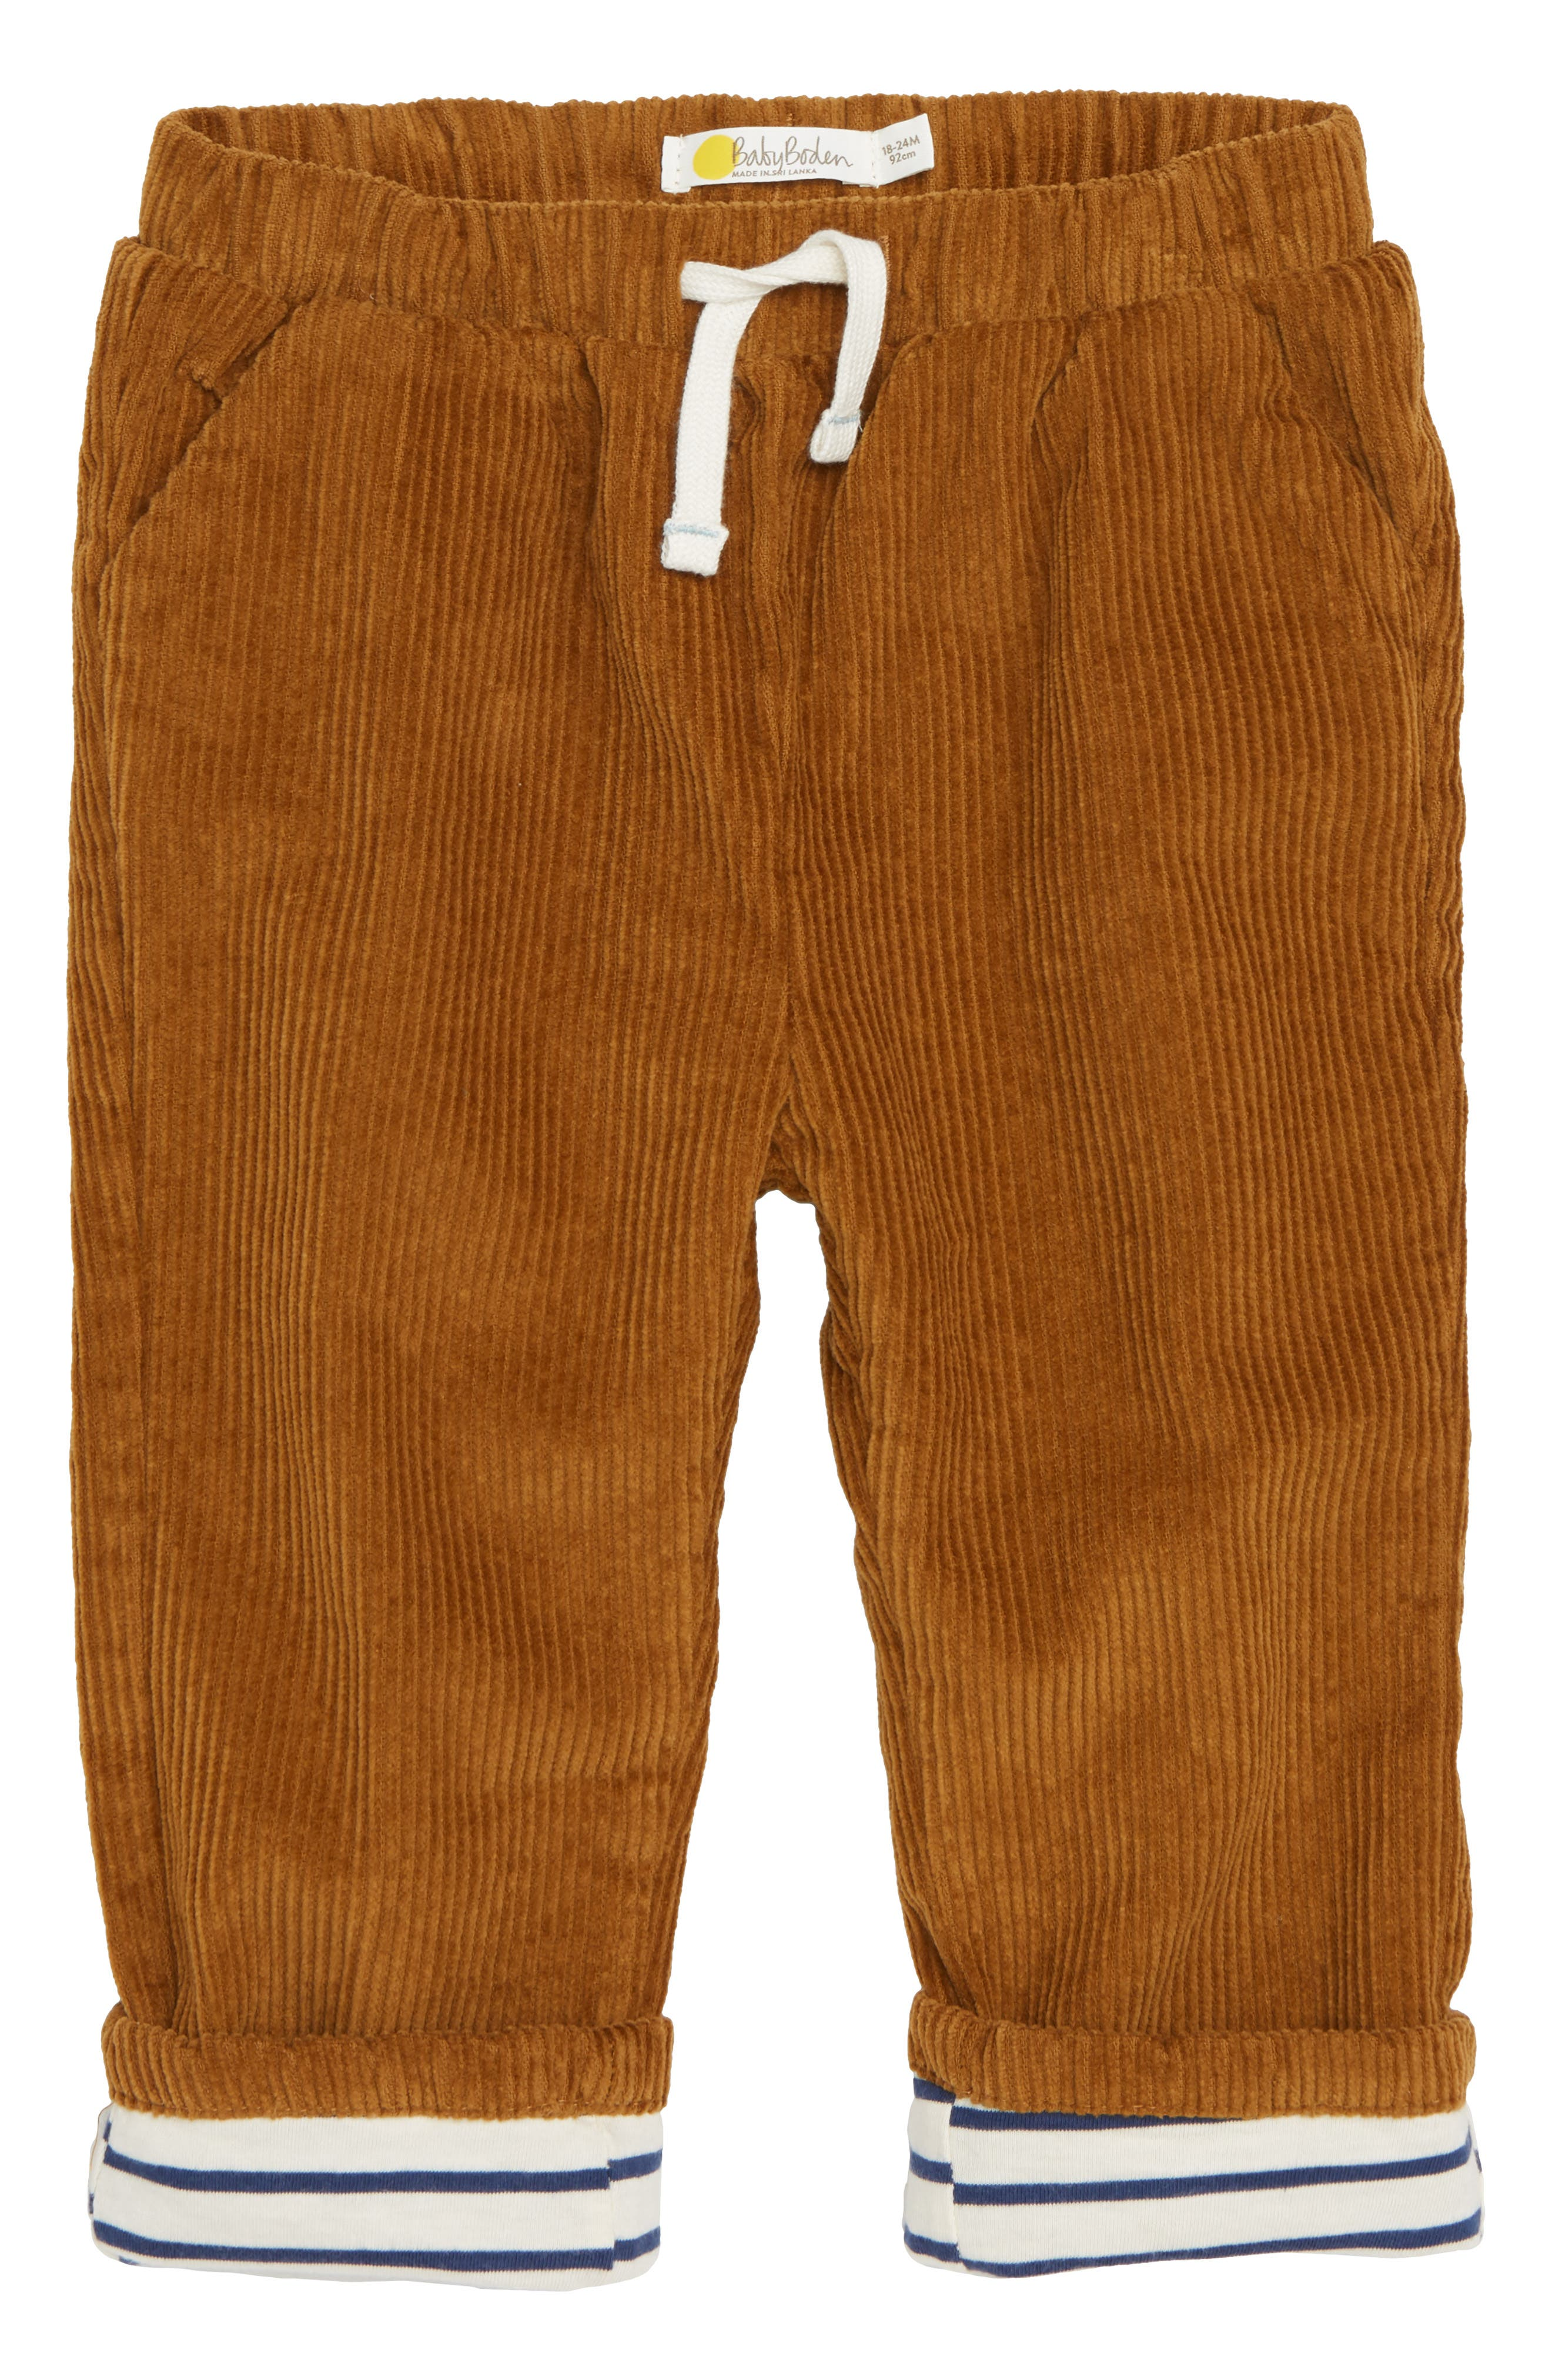 Lined Corduroy Trousers,                         Main,                         color, TEDDY BEAR BROWN